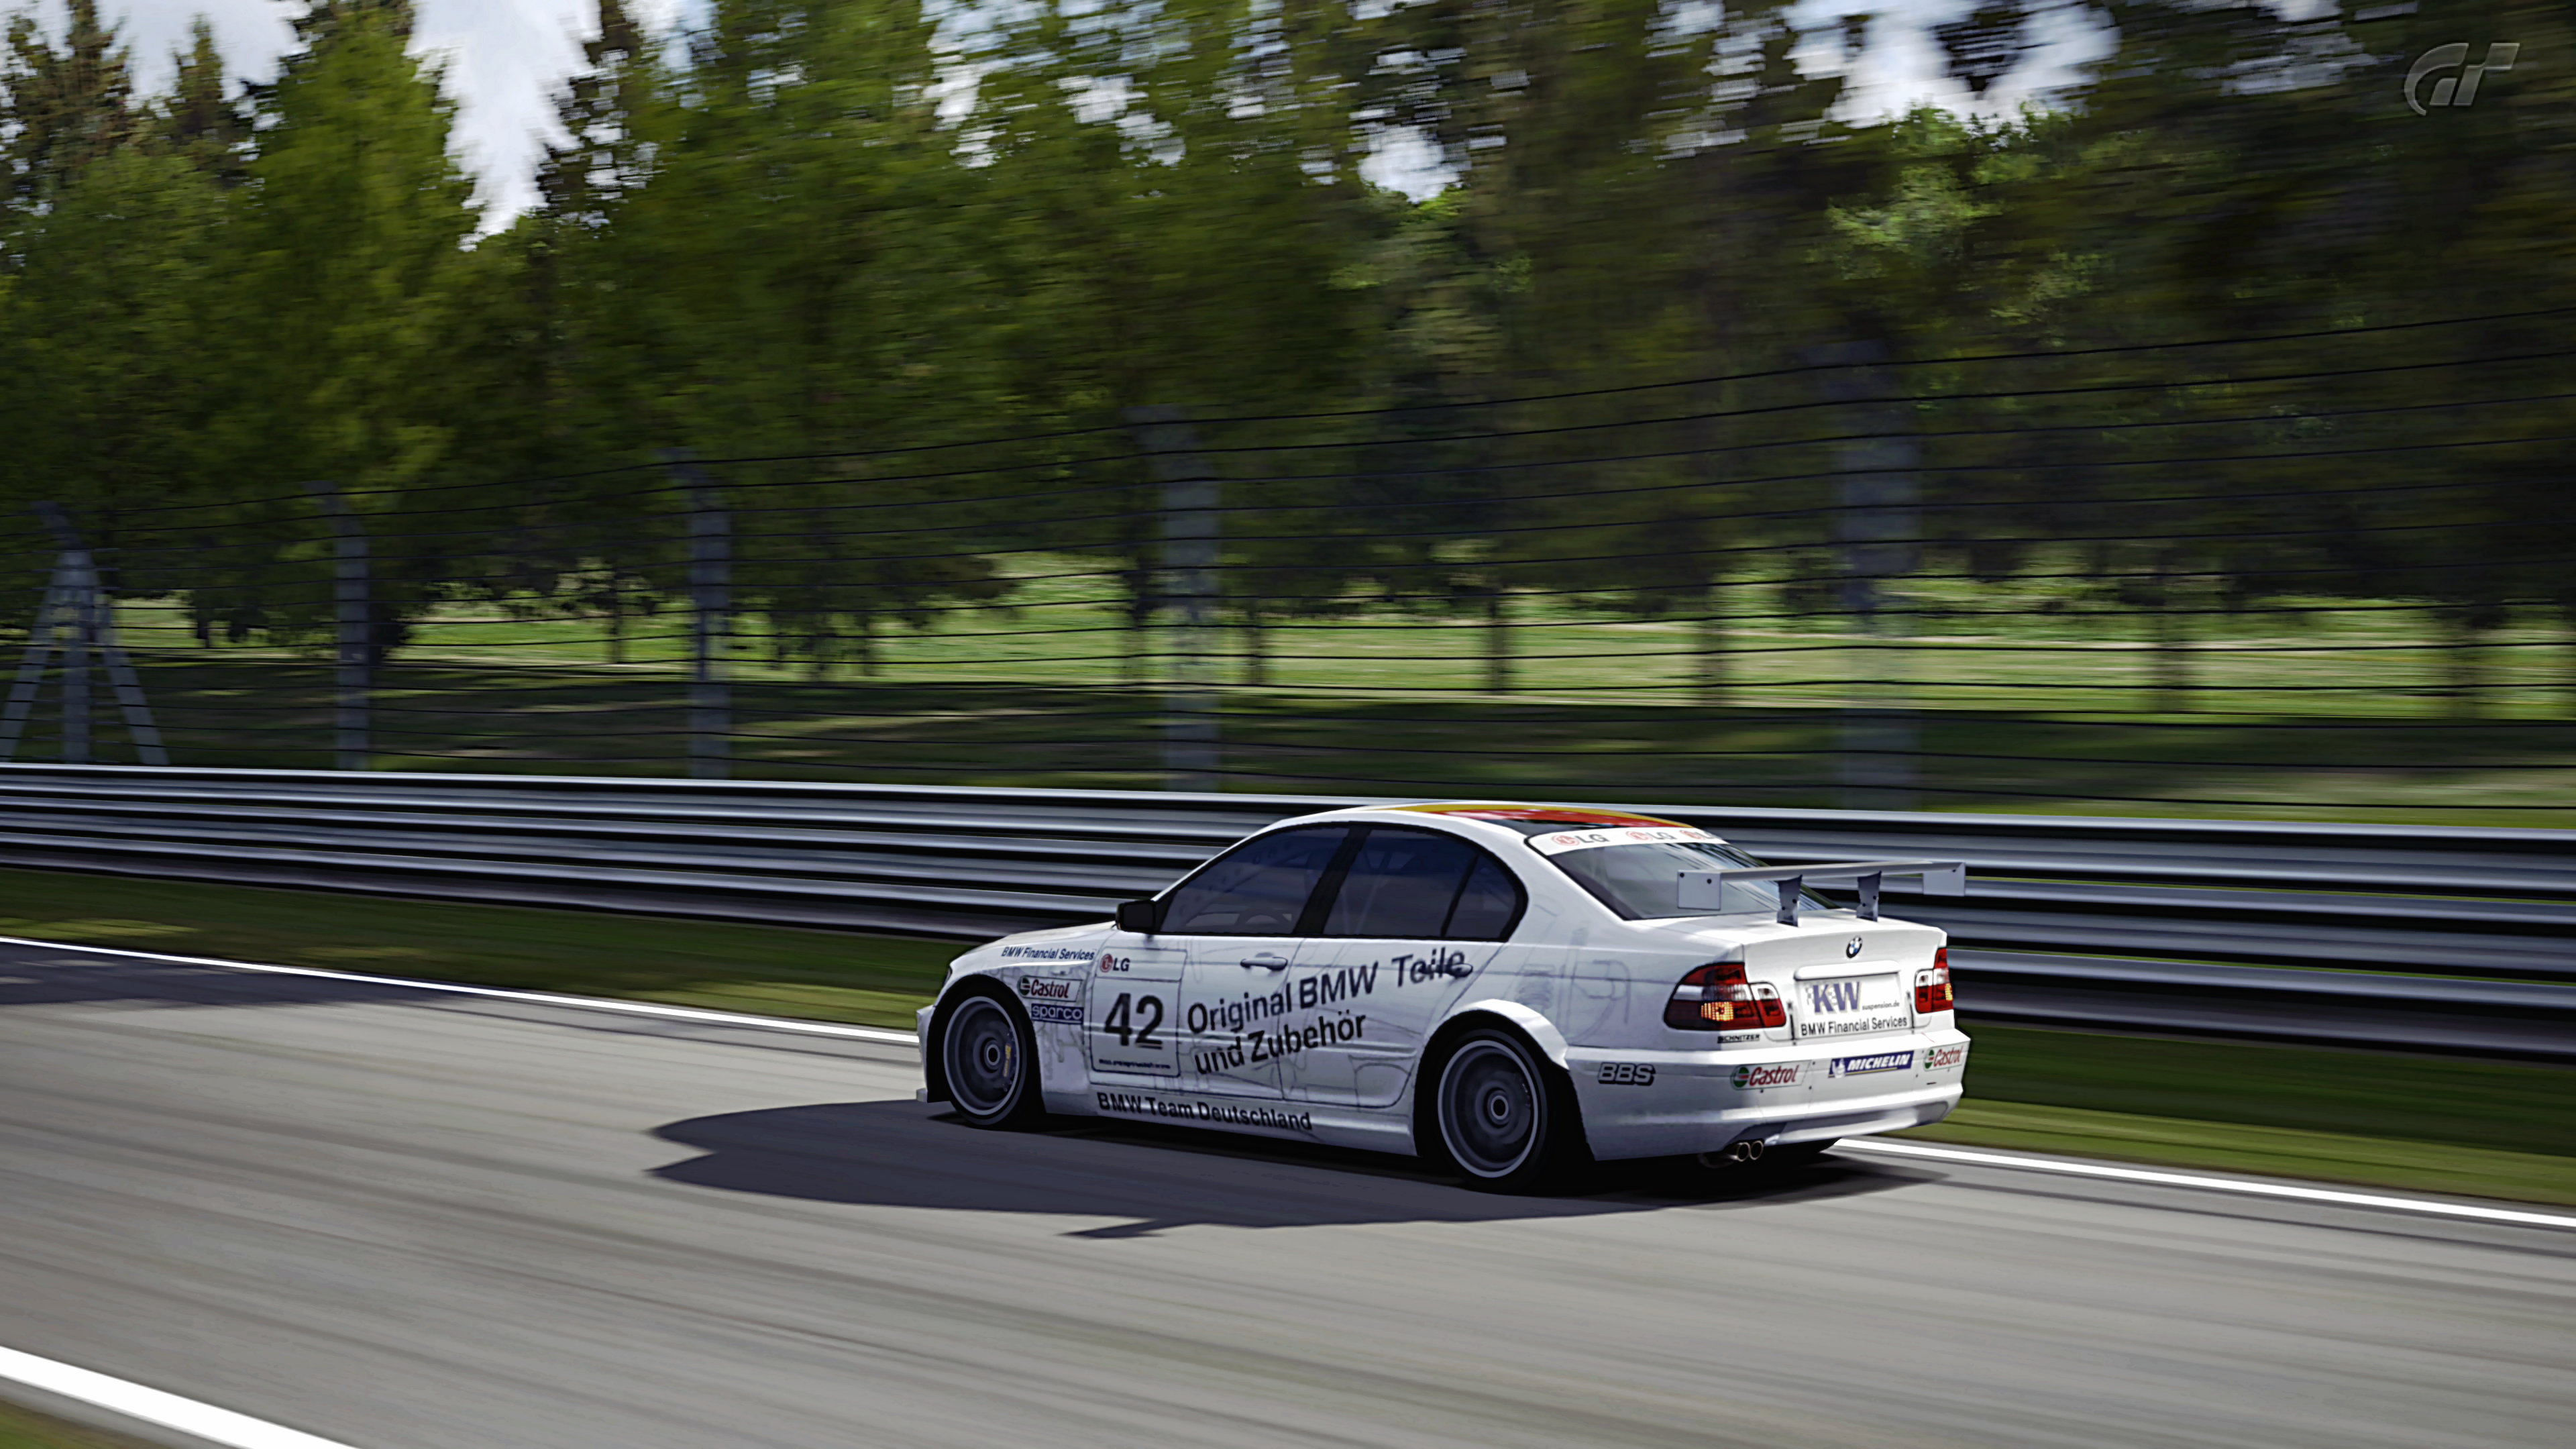 BMW 320i Touring Car | Flickr - Photo Sharing!